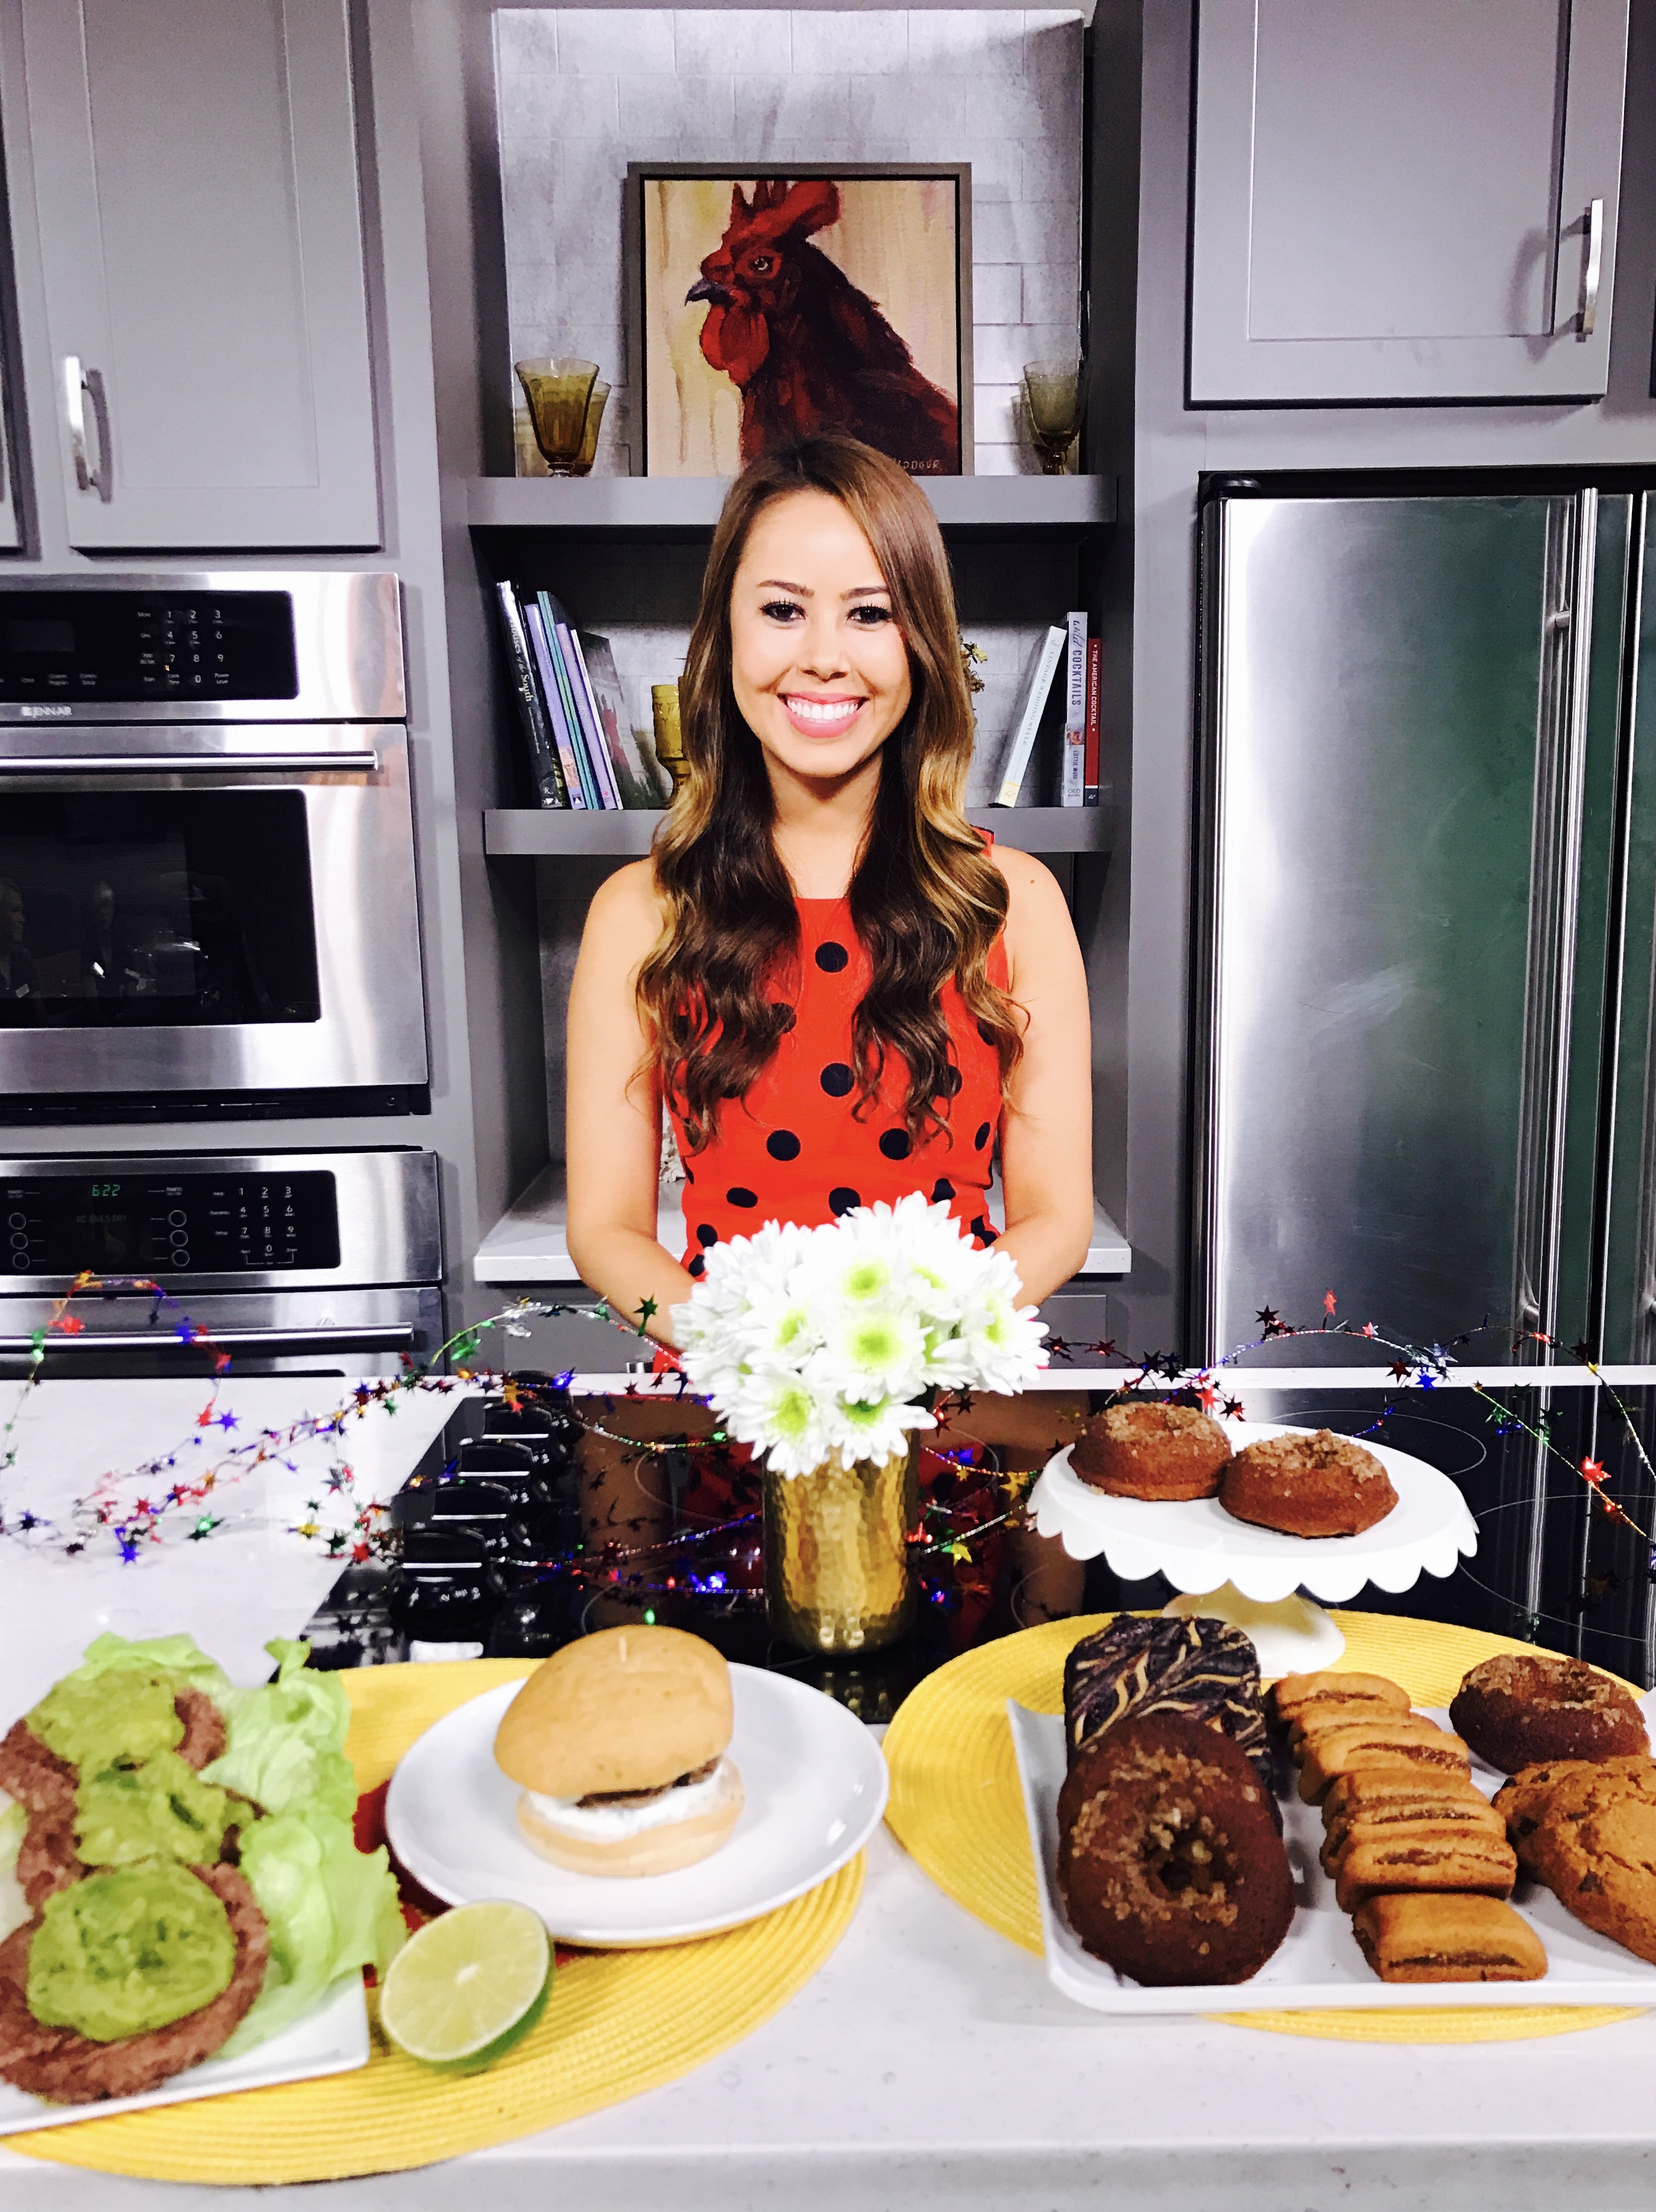 Mia Syn Dietitian TV Nutrition Expert